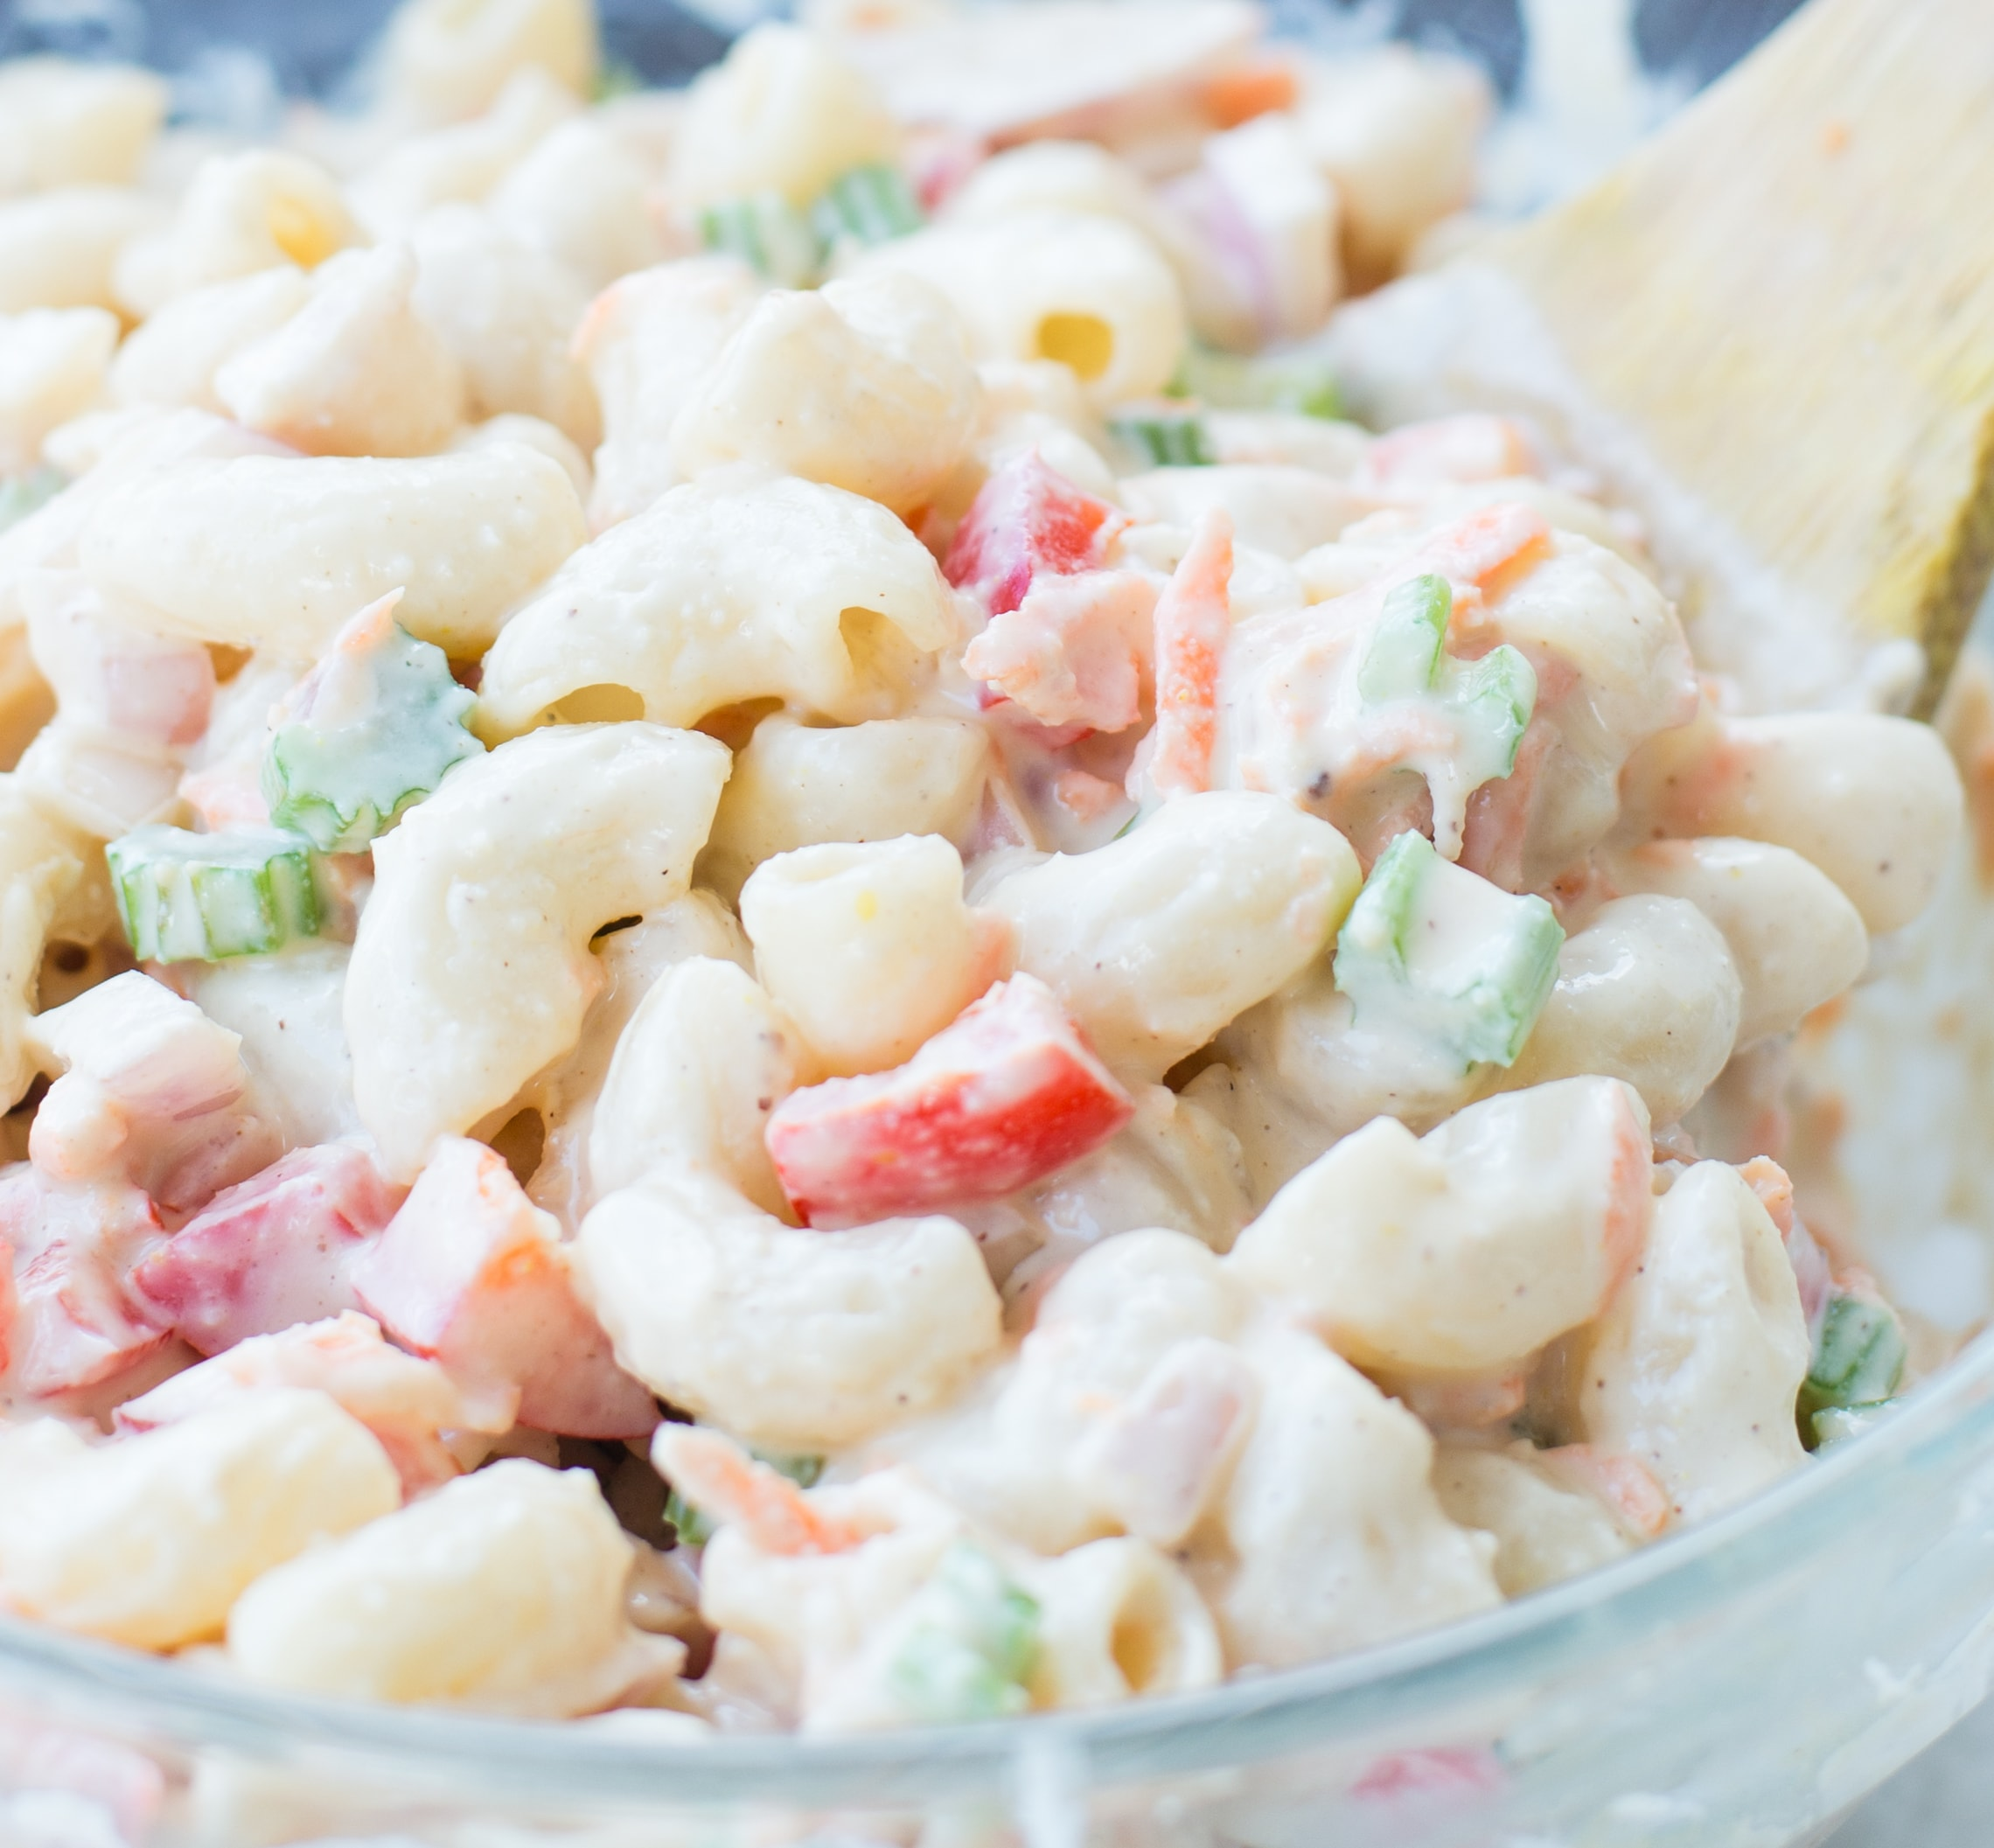 Delicious Vegan Macaroni Salad is a perfect side for Picnic, potluck or Barbecue. This Vegan Pasta salad is creamy with crisp vegetables and a lightTahini Cashew Dressing.